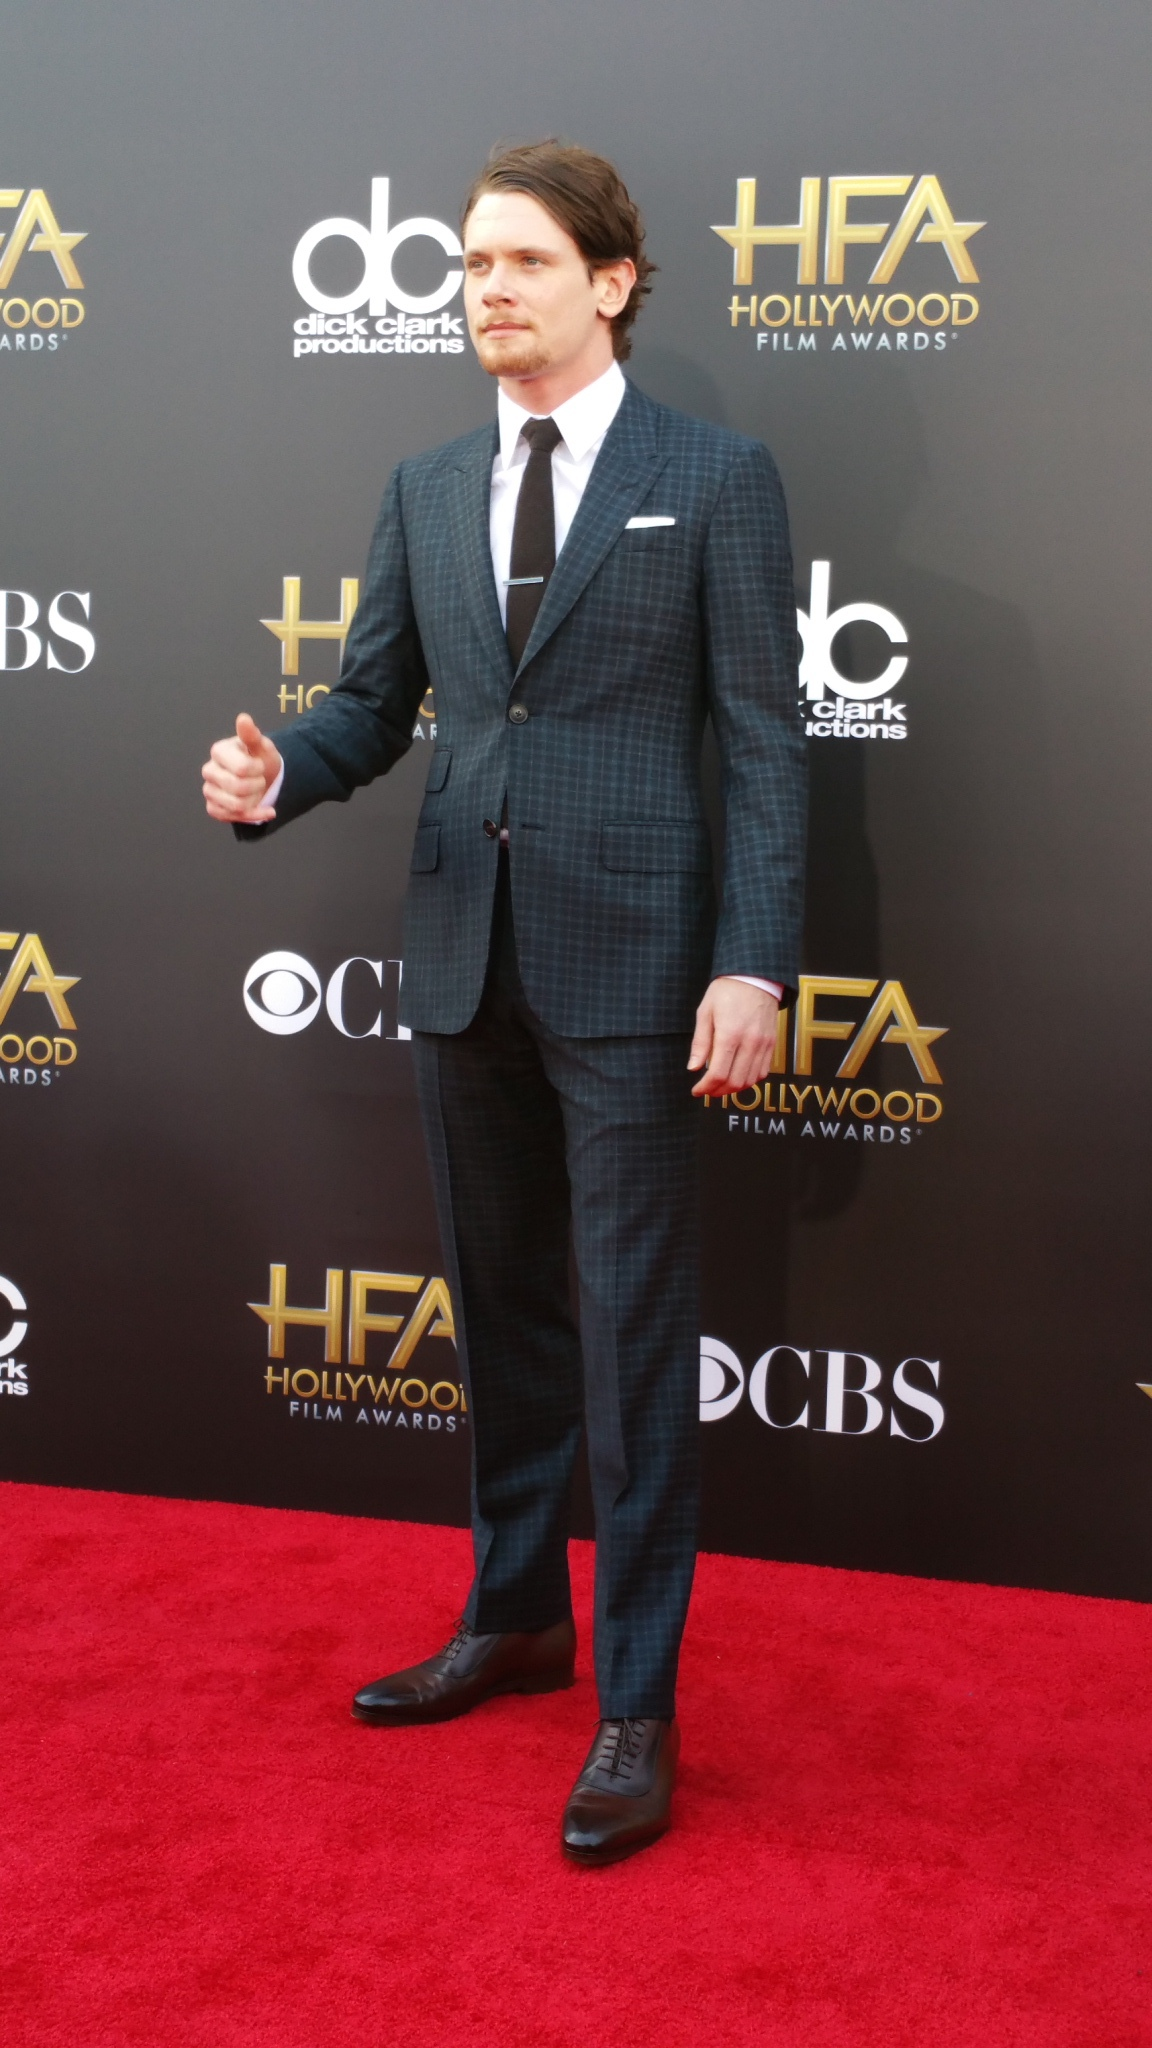 Jack O'Connell at event of Hollywood Film Awards (2014) photo #540431